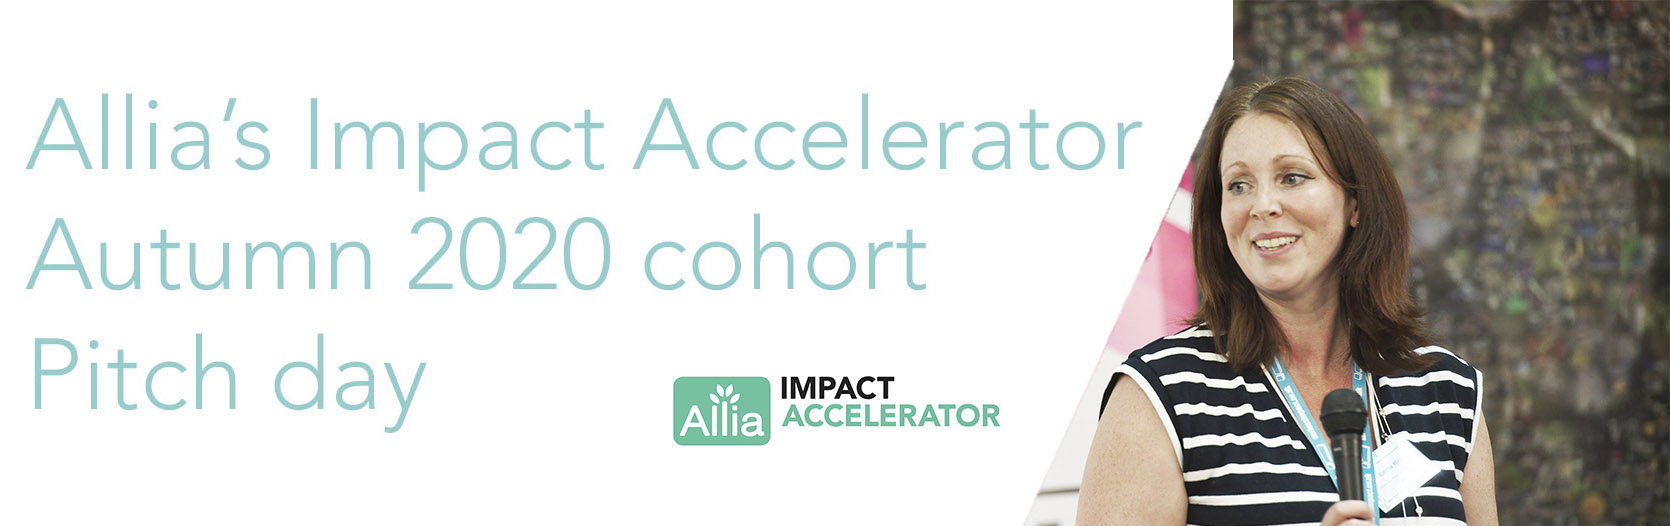 Impact Accelerator Autumn 2020 cohort - Pitch day